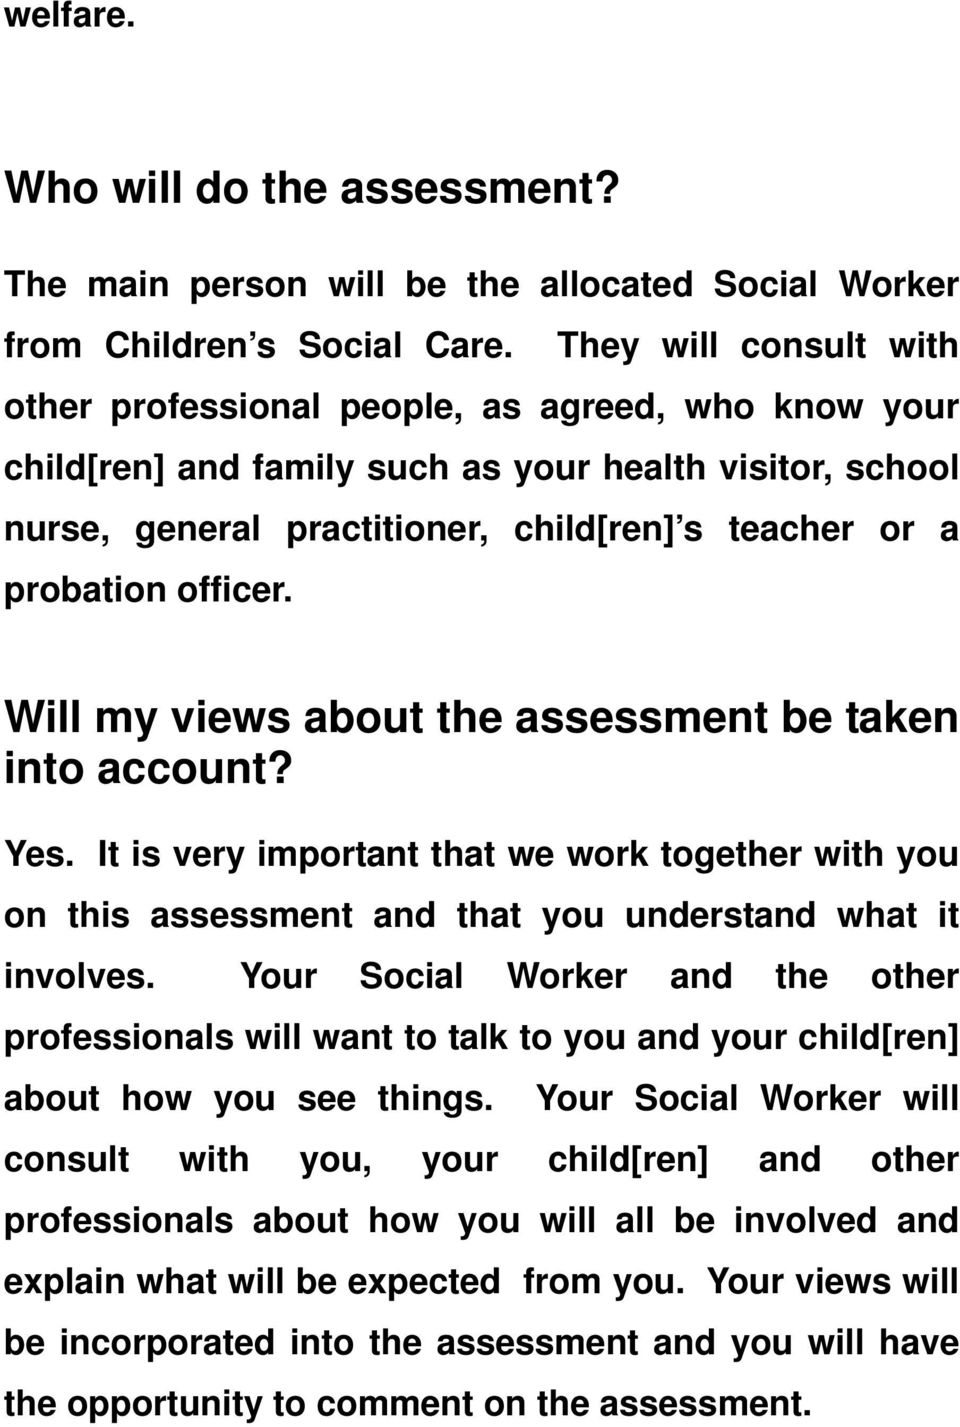 officer. Will my views about the assessment be taken into account? Yes. It is very important that we work together with you on this assessment and that you understand what it involves.